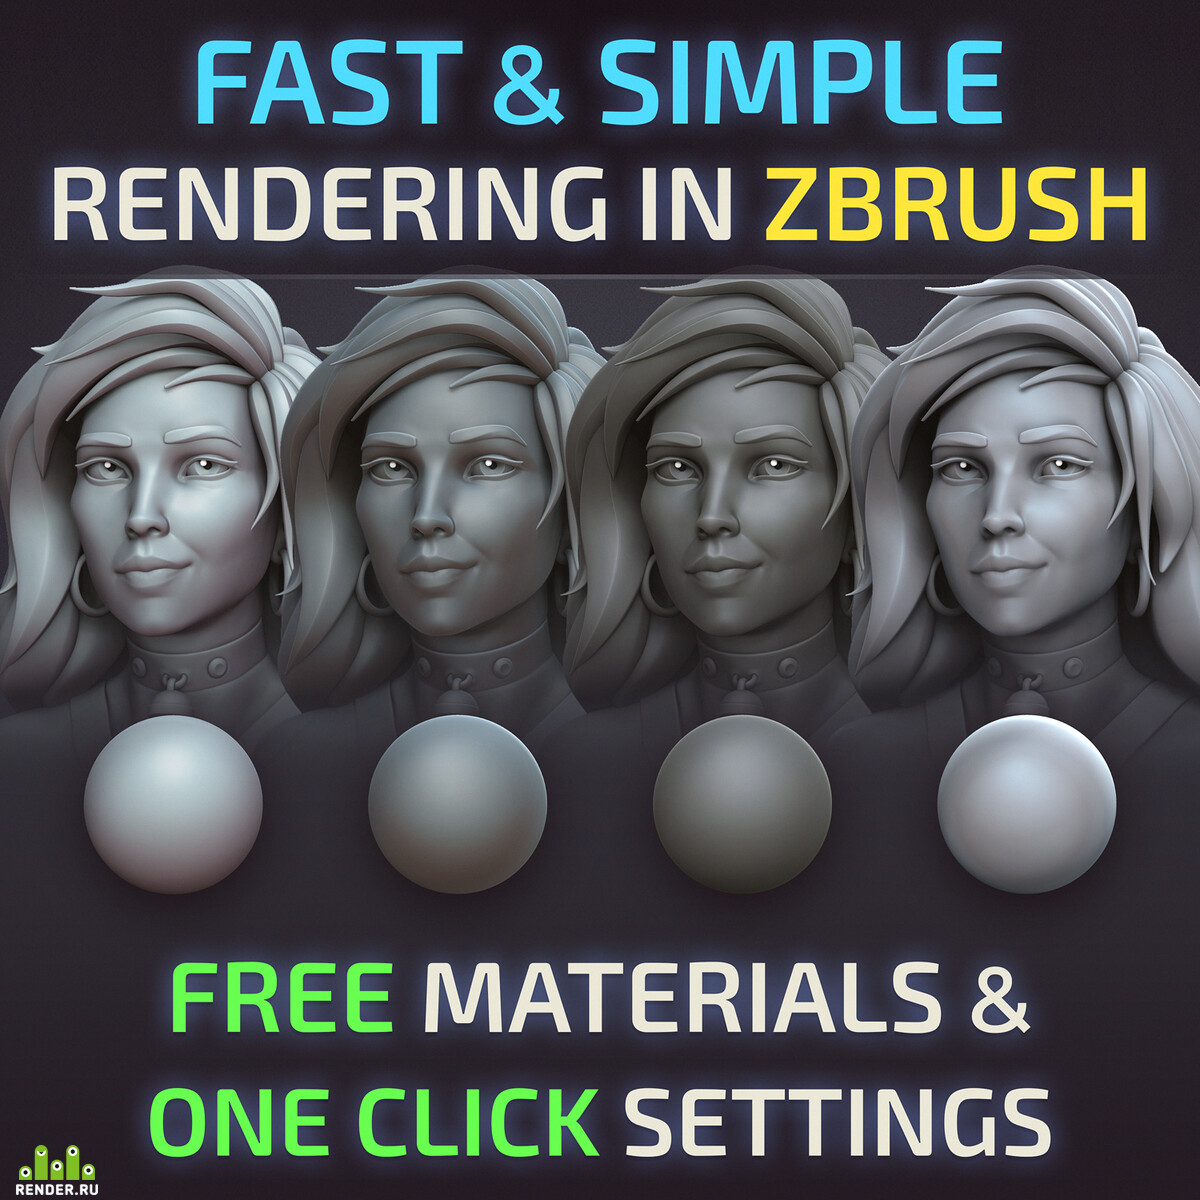 Rendering_in_Zbrush_ICON.png